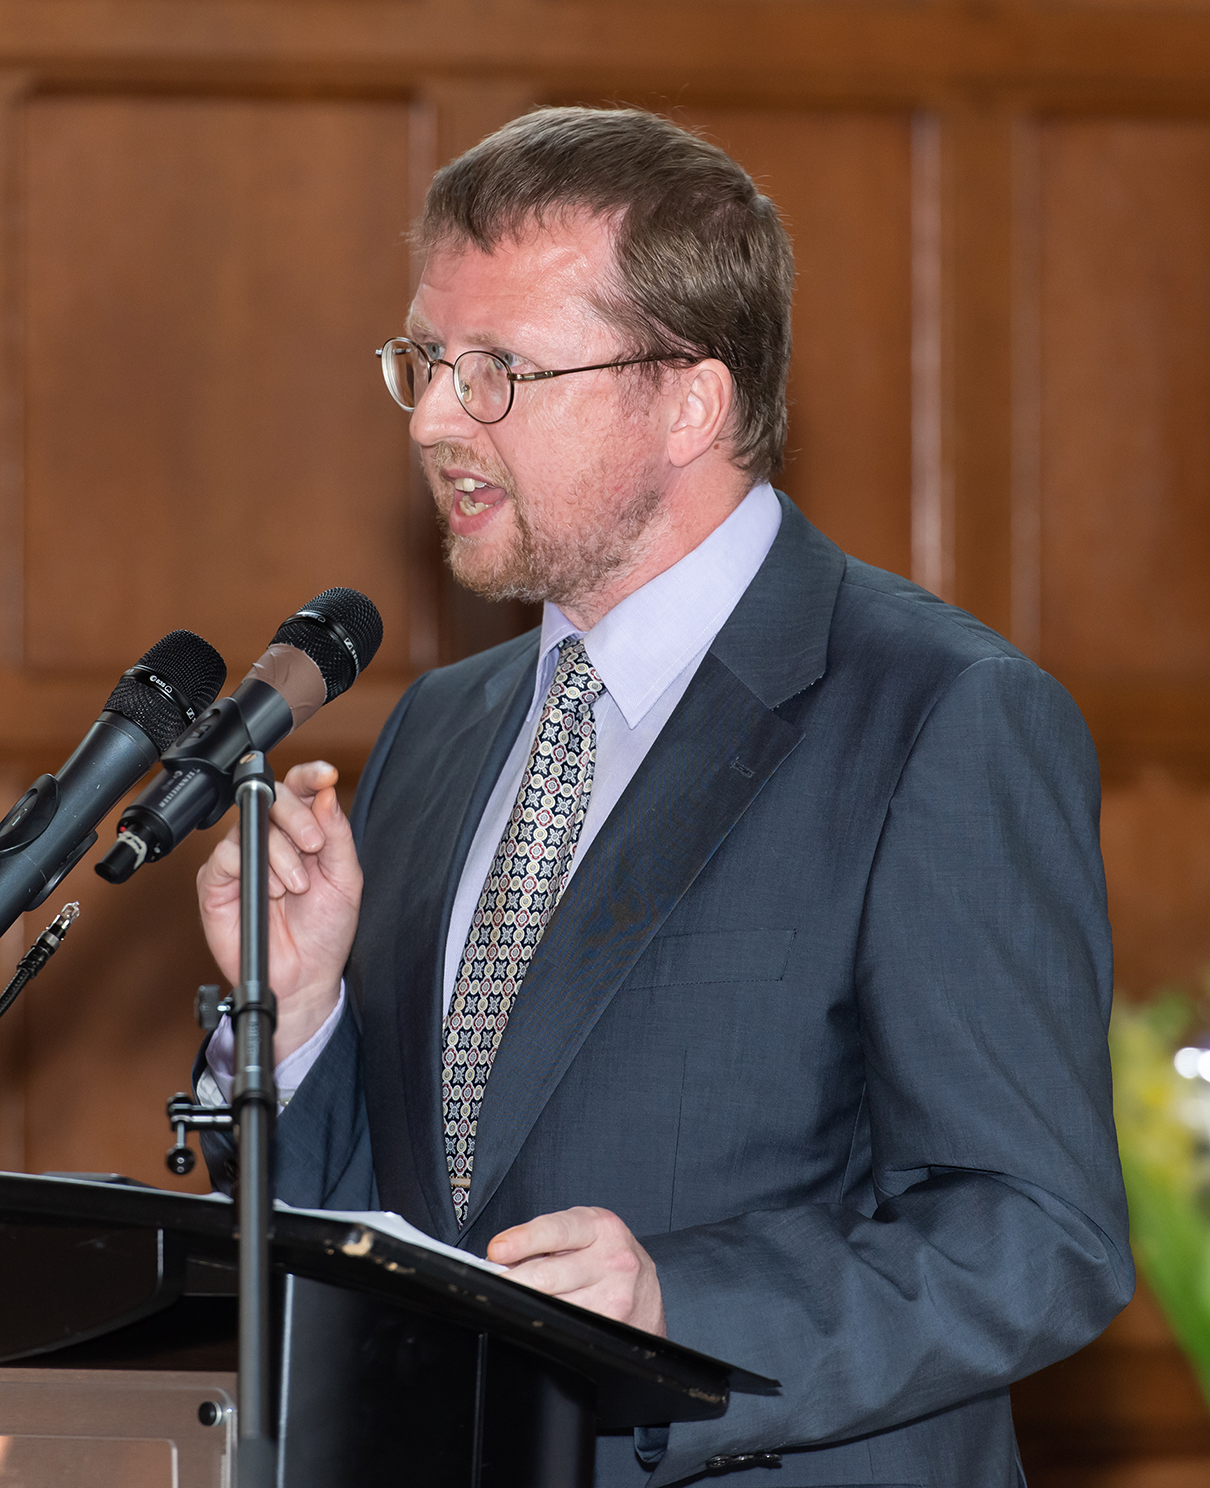 Dr. Paul Thistle delivers speech on global health